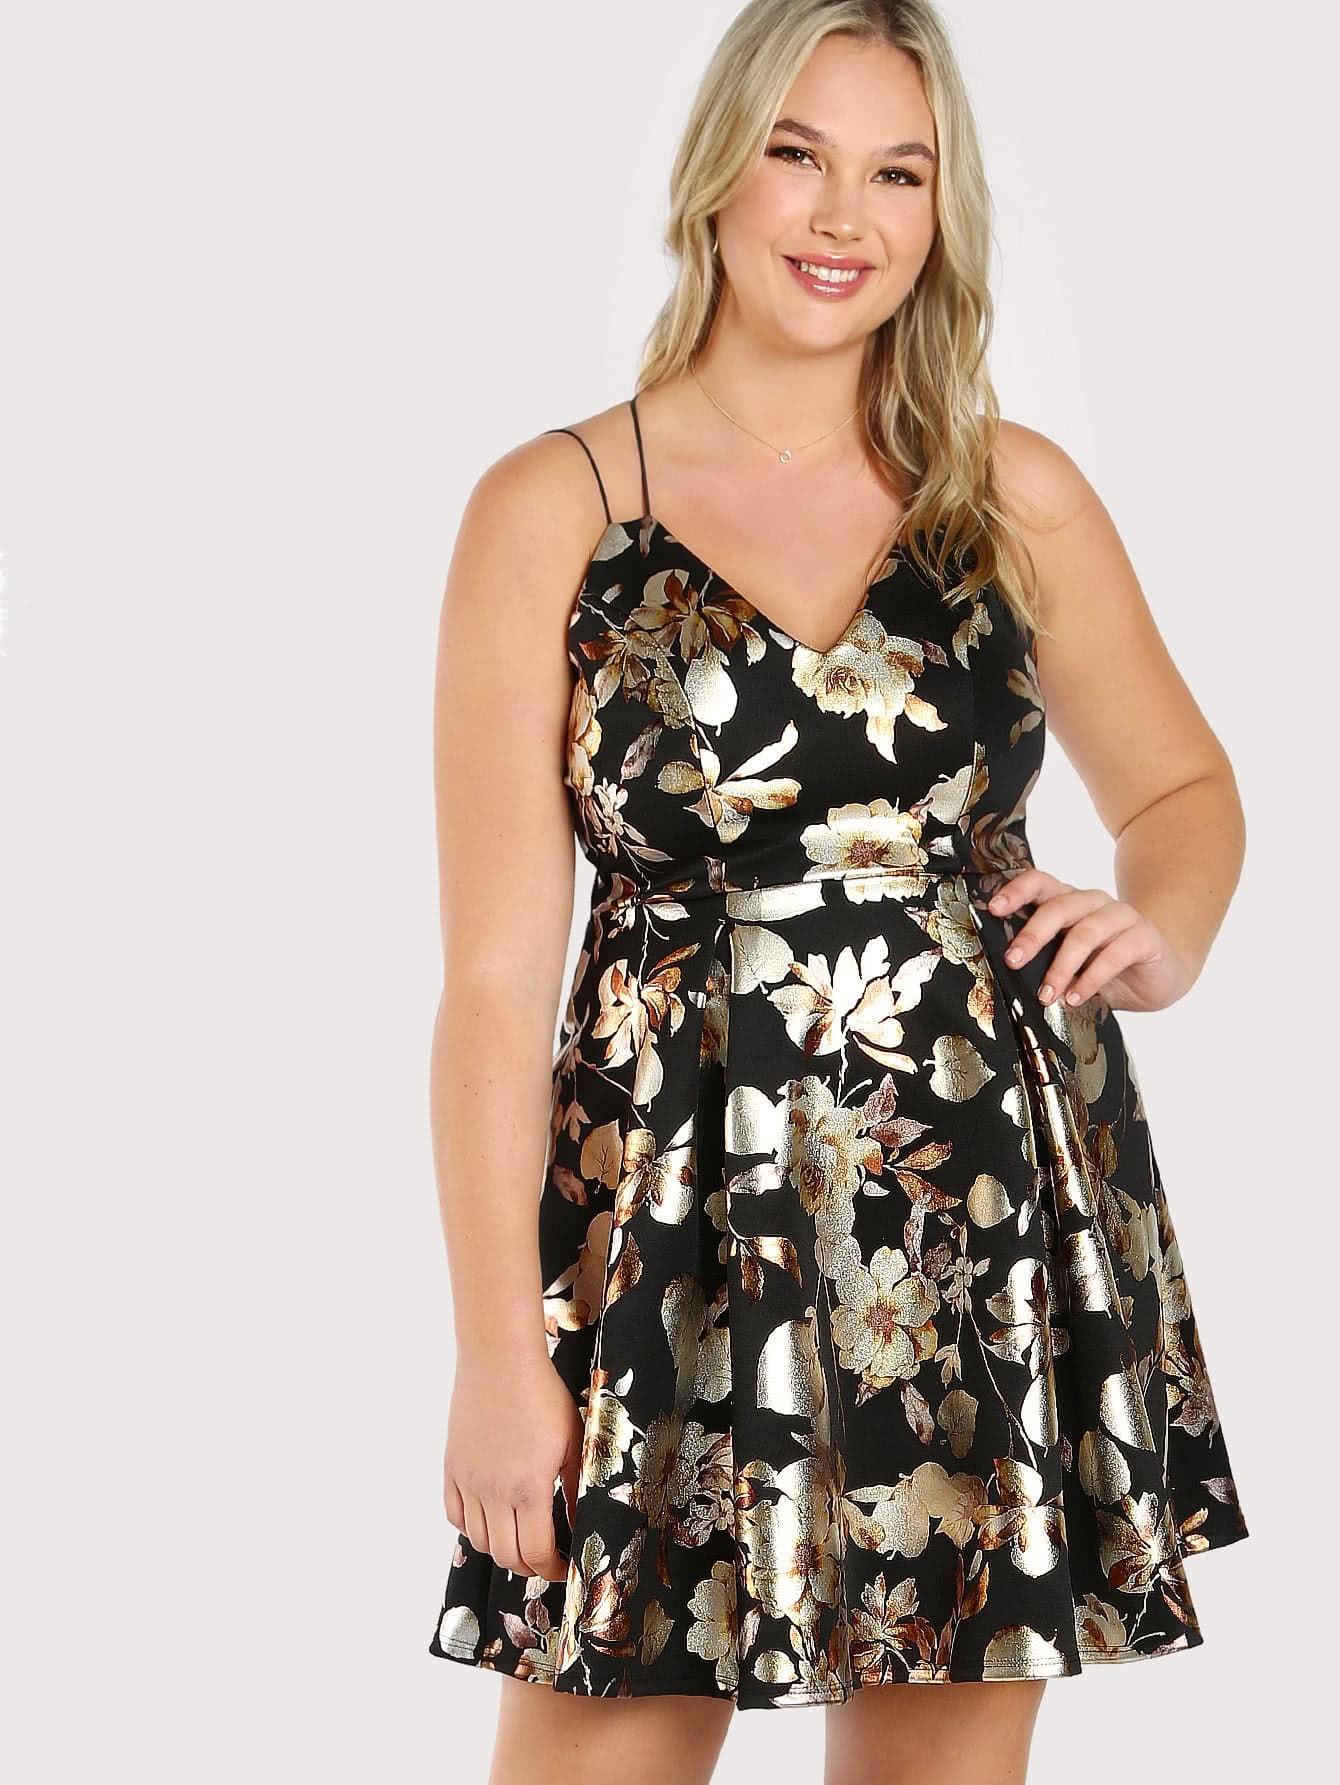 Metallic Floral Print Spaghetti Strap Dress BLACK lole капри lsw0963 sydney capri 10 black